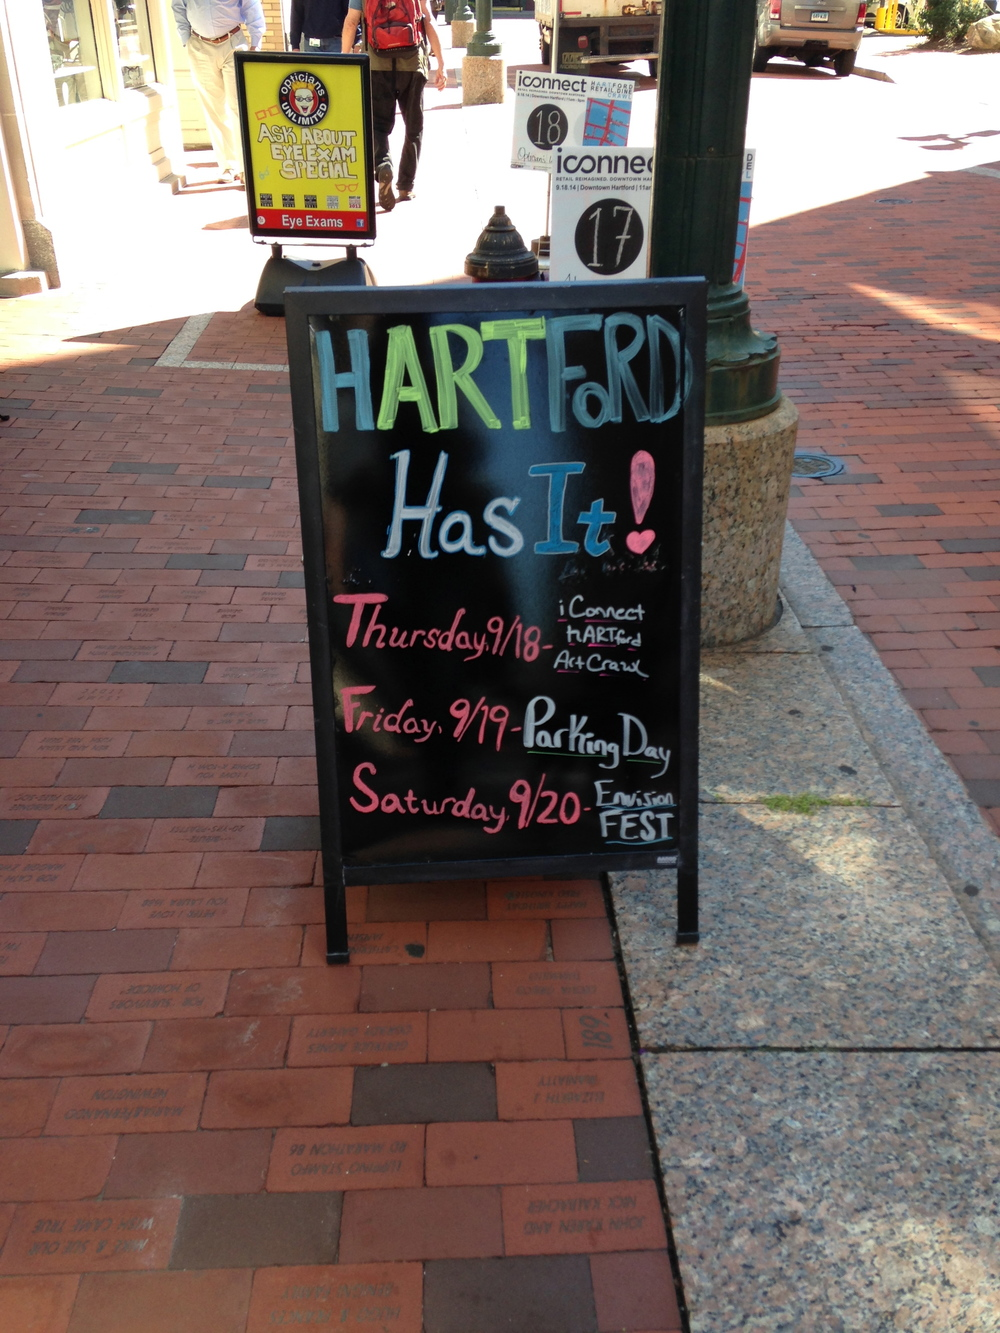 Weekend festivities in Hartford